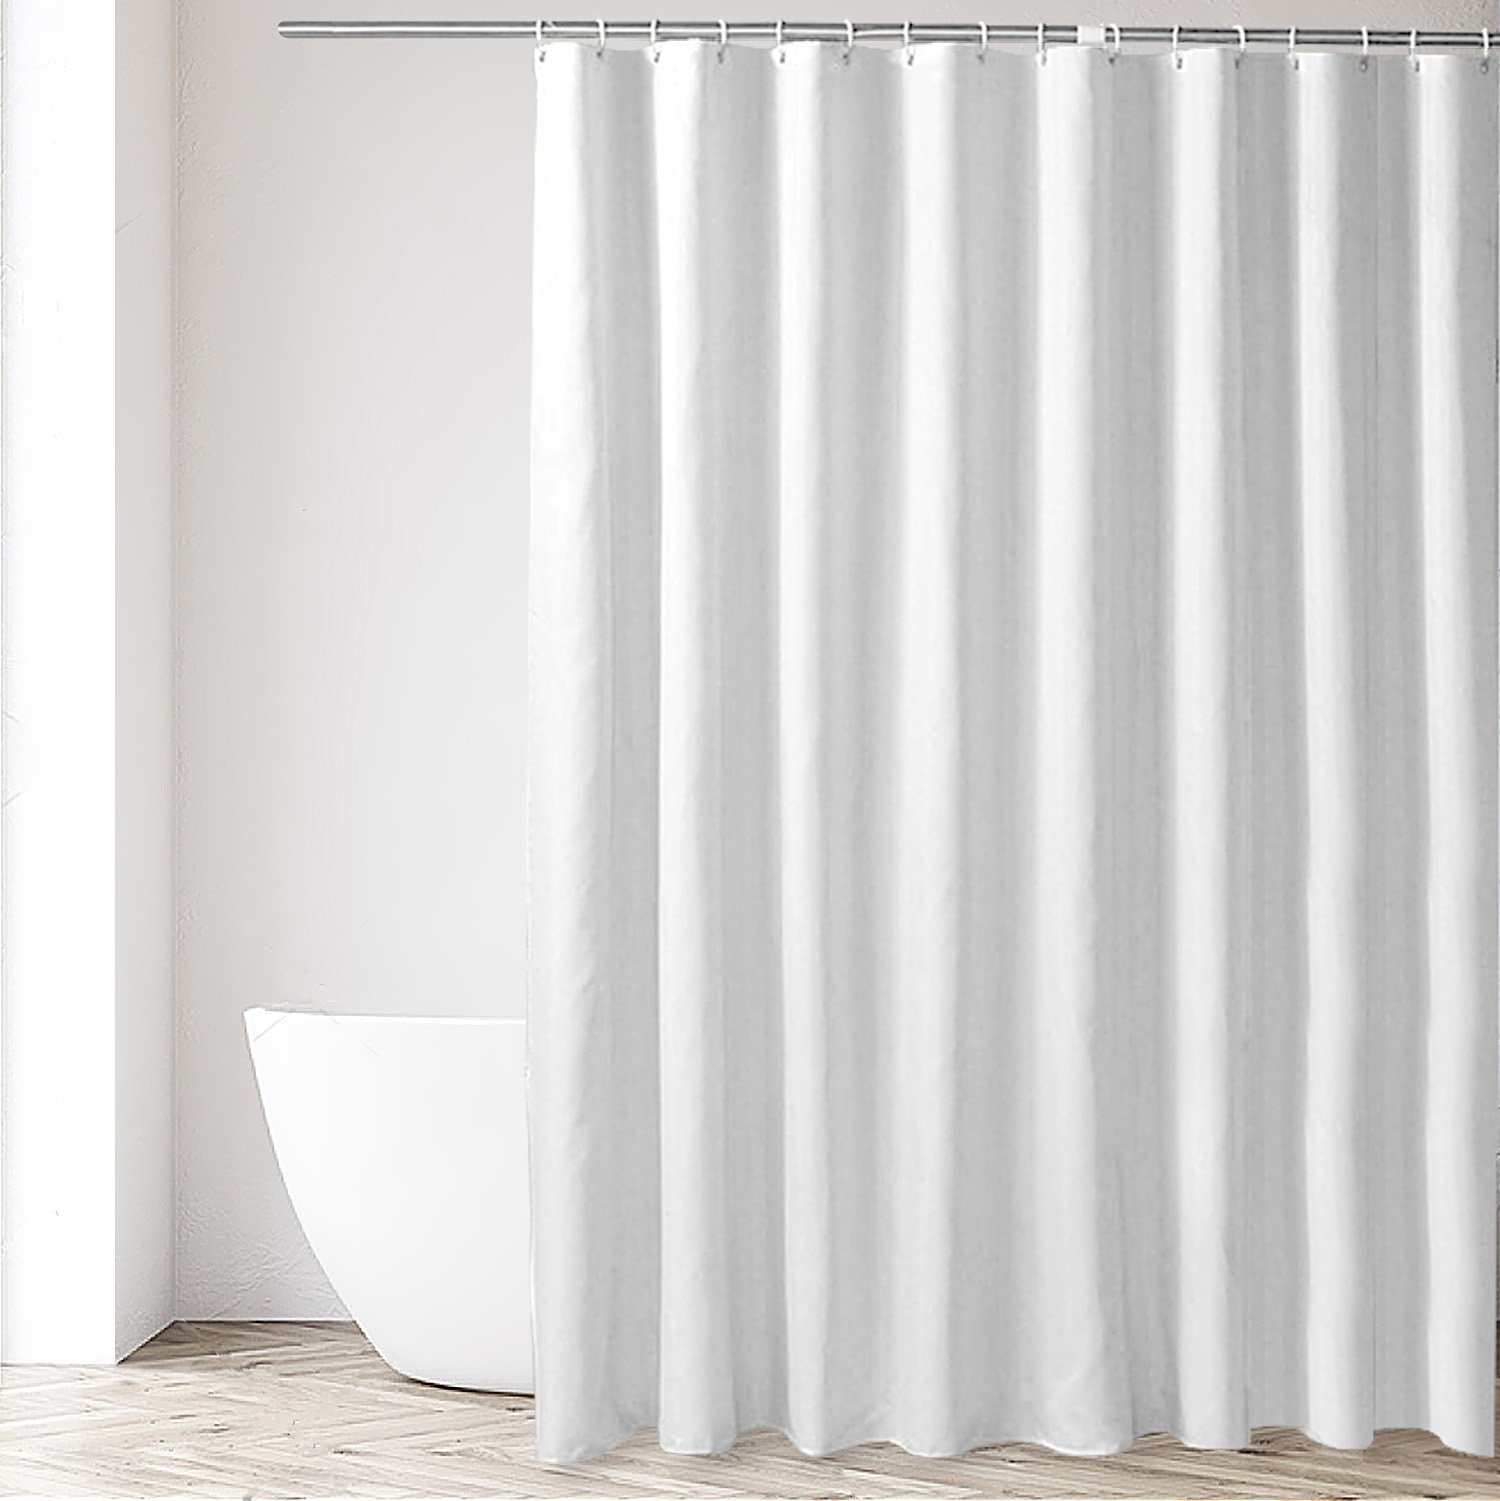 Eforgift Modern Polyester Shower Curtain Liner Fabric White No More Water or Molds, Durable Shower Curtain Standard Size, Easy Clean for Everyday Use, 72'' x 72'' by Eforgift